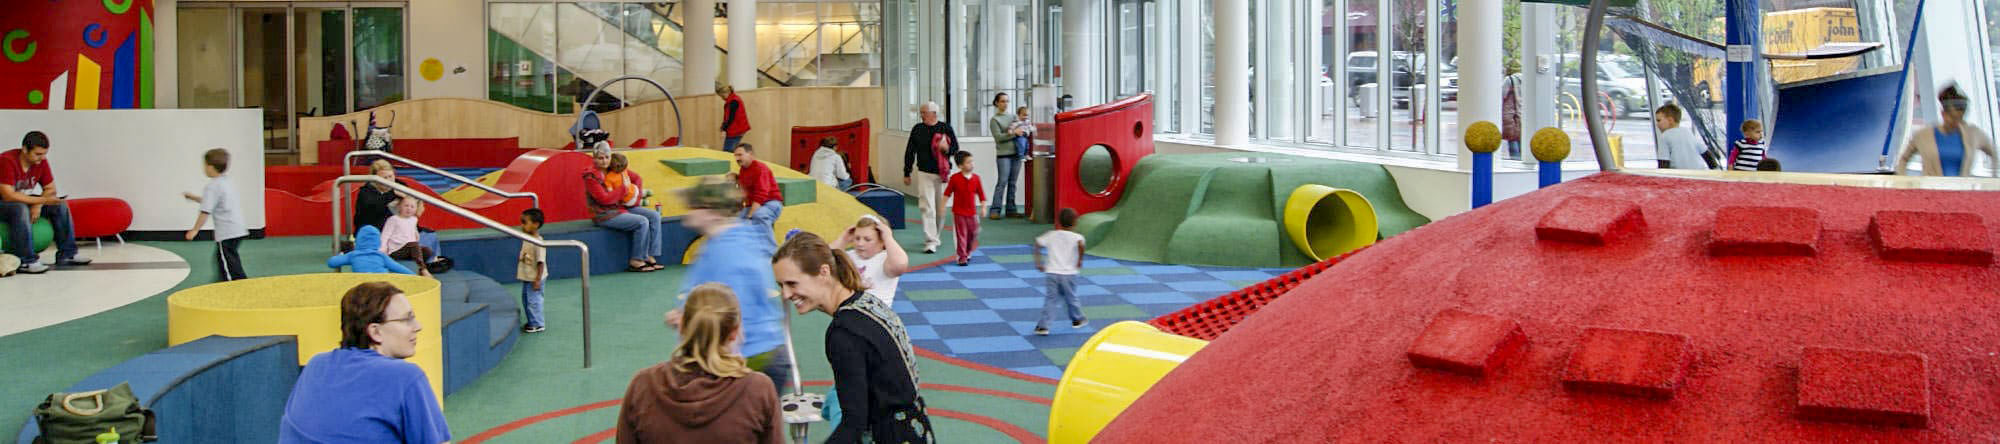 The Commons free, public playground - Columbus, Indiana